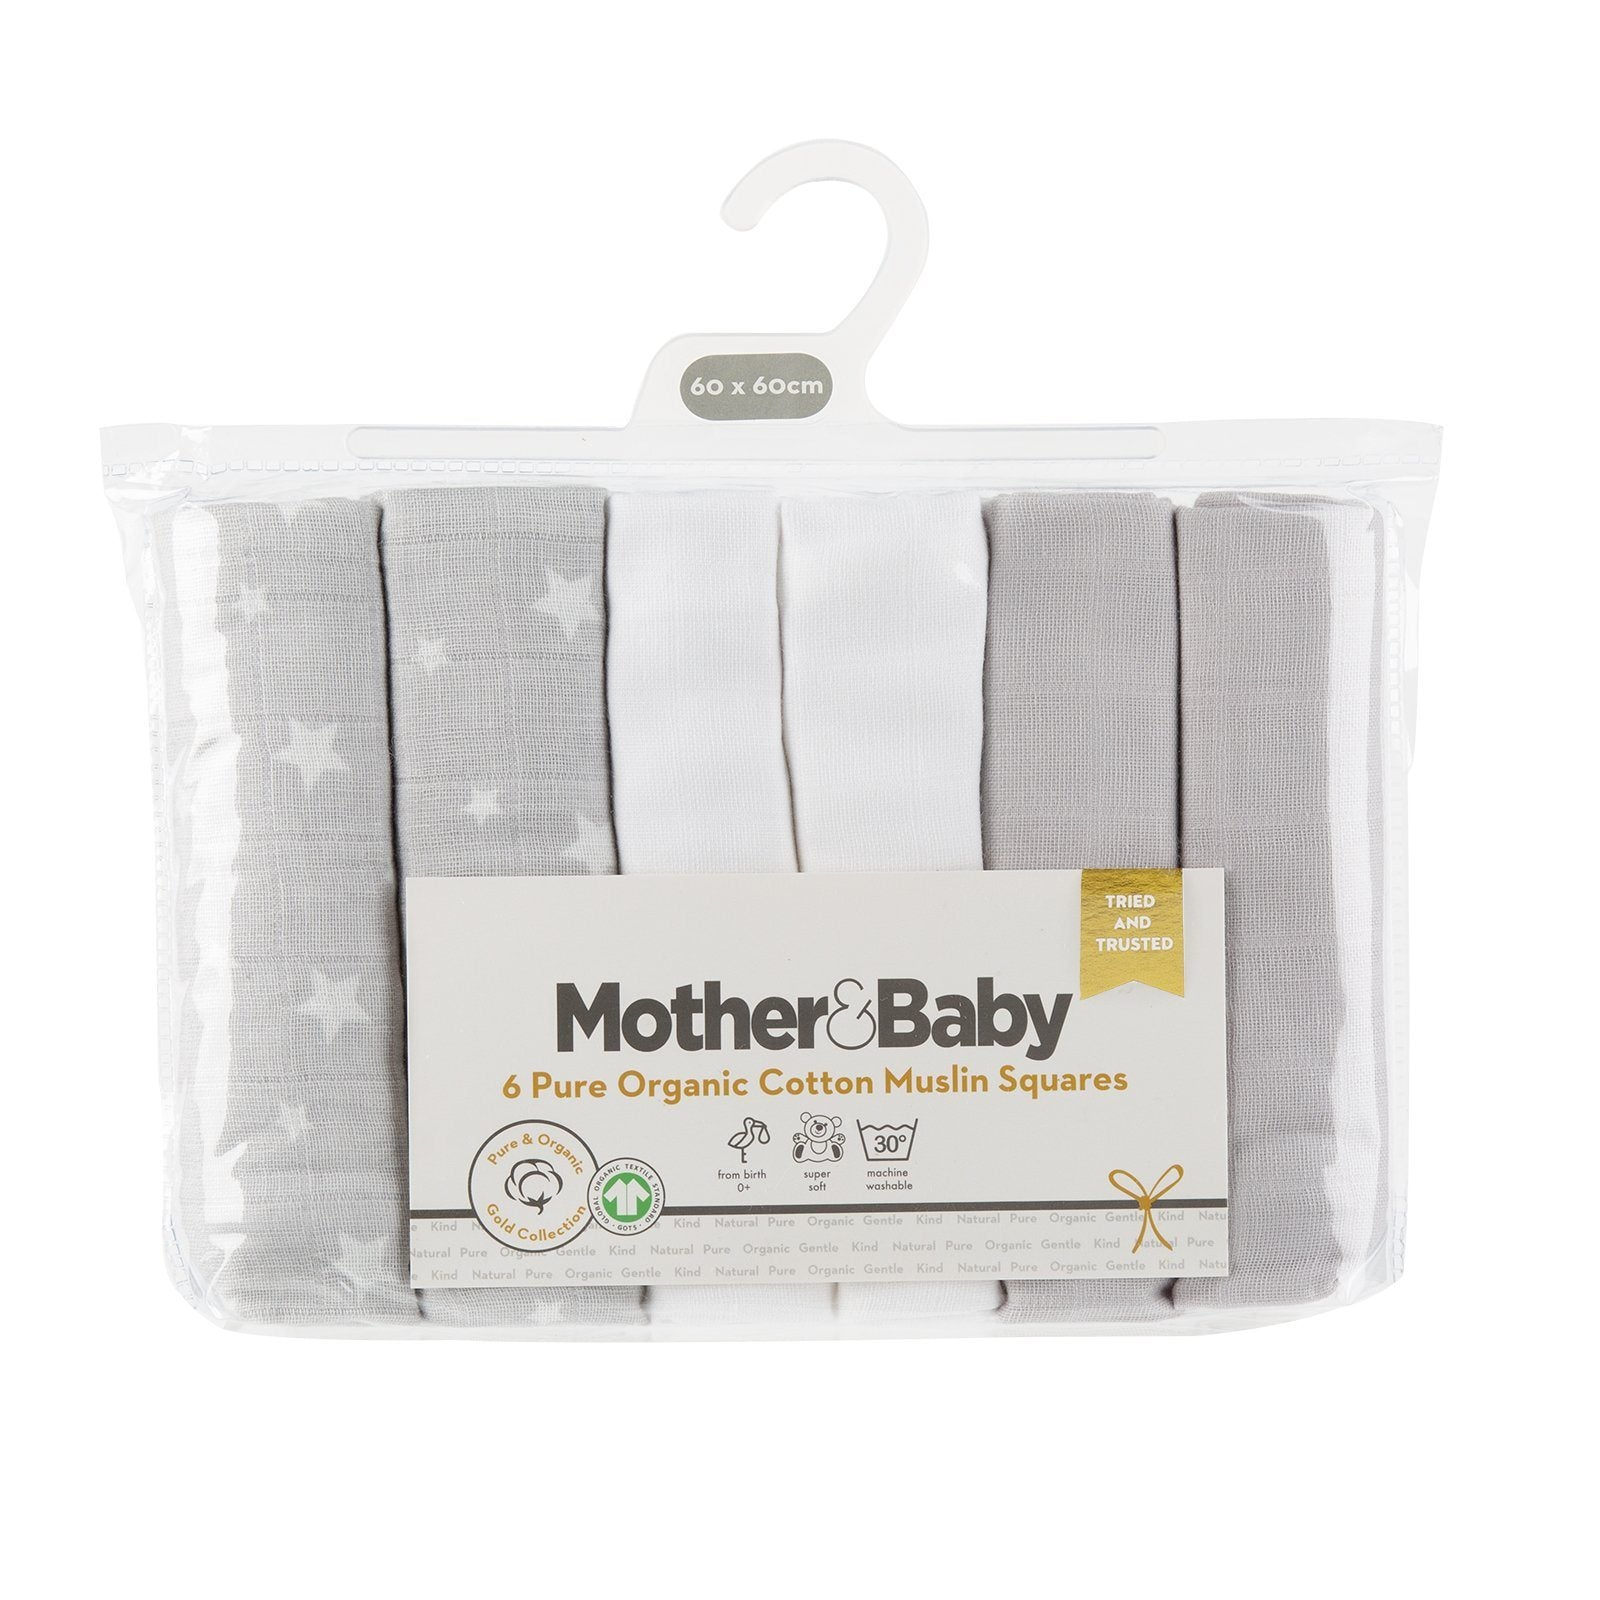 Mother&Baby Organic Cotton Muslins 6 Pack -Grey Star Mother & Baby